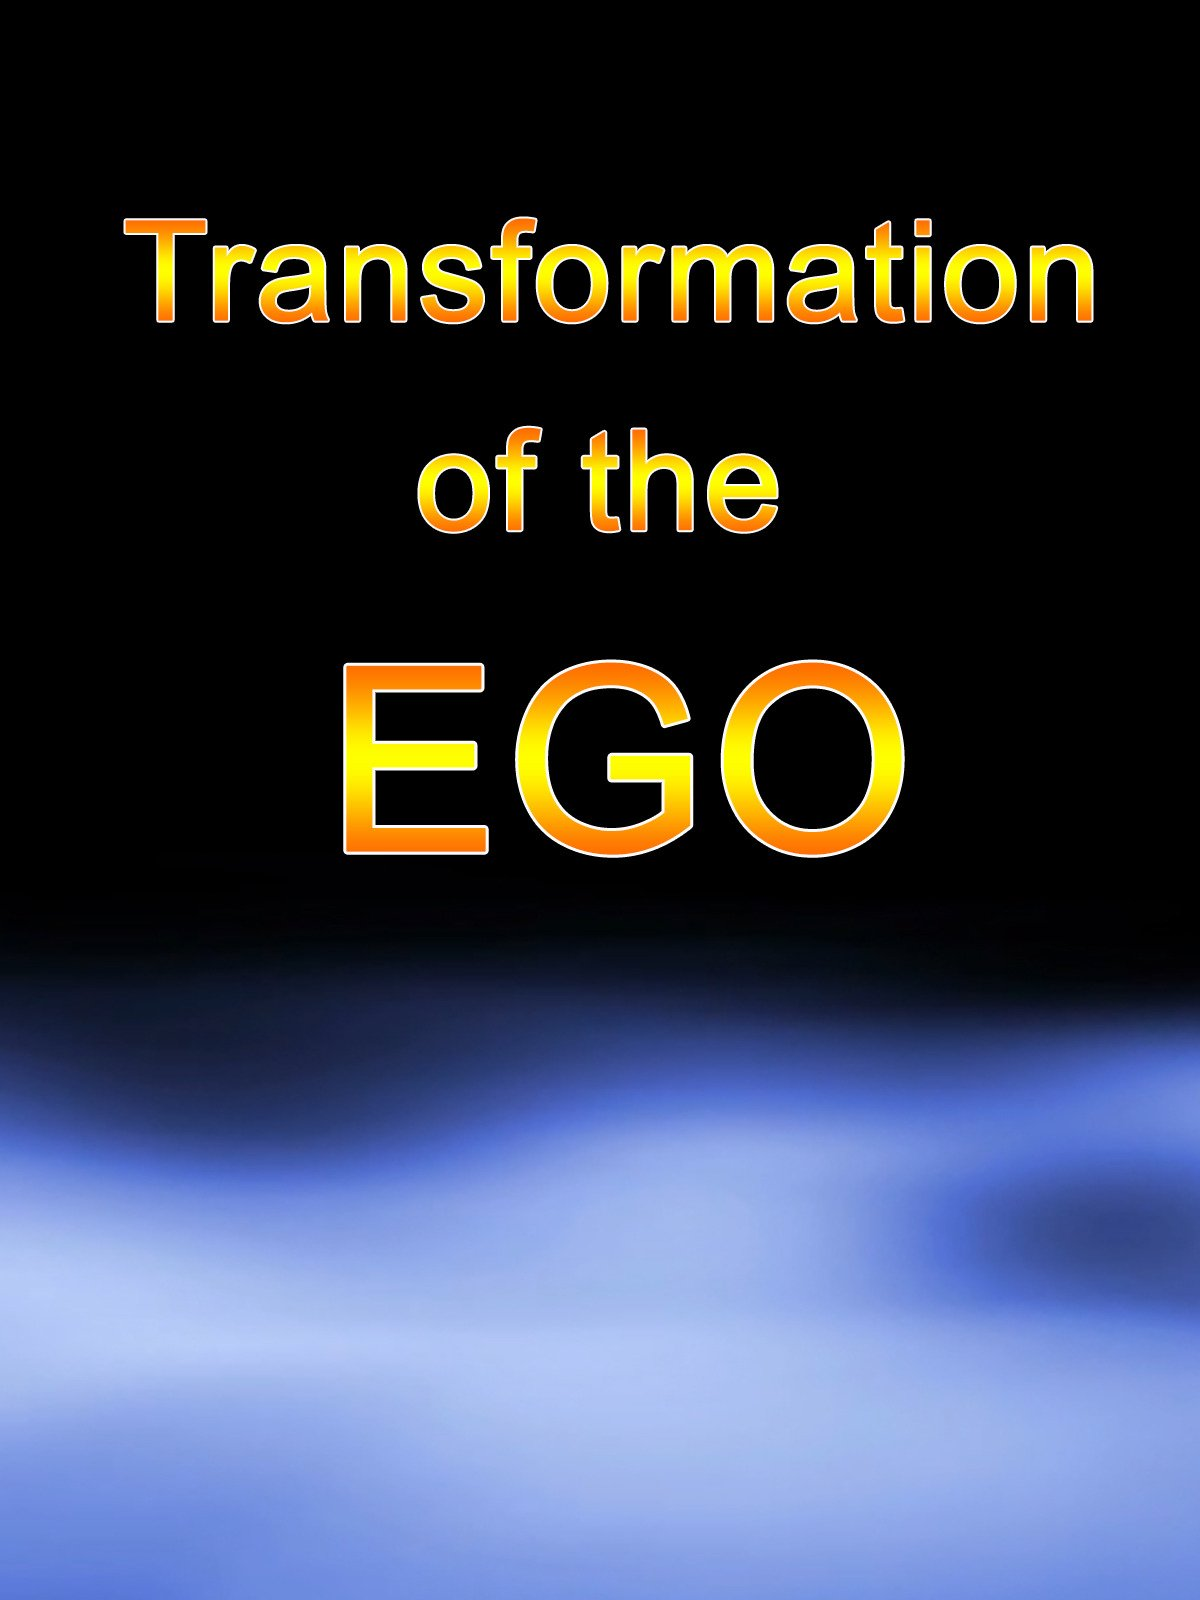 Transformation of the ego